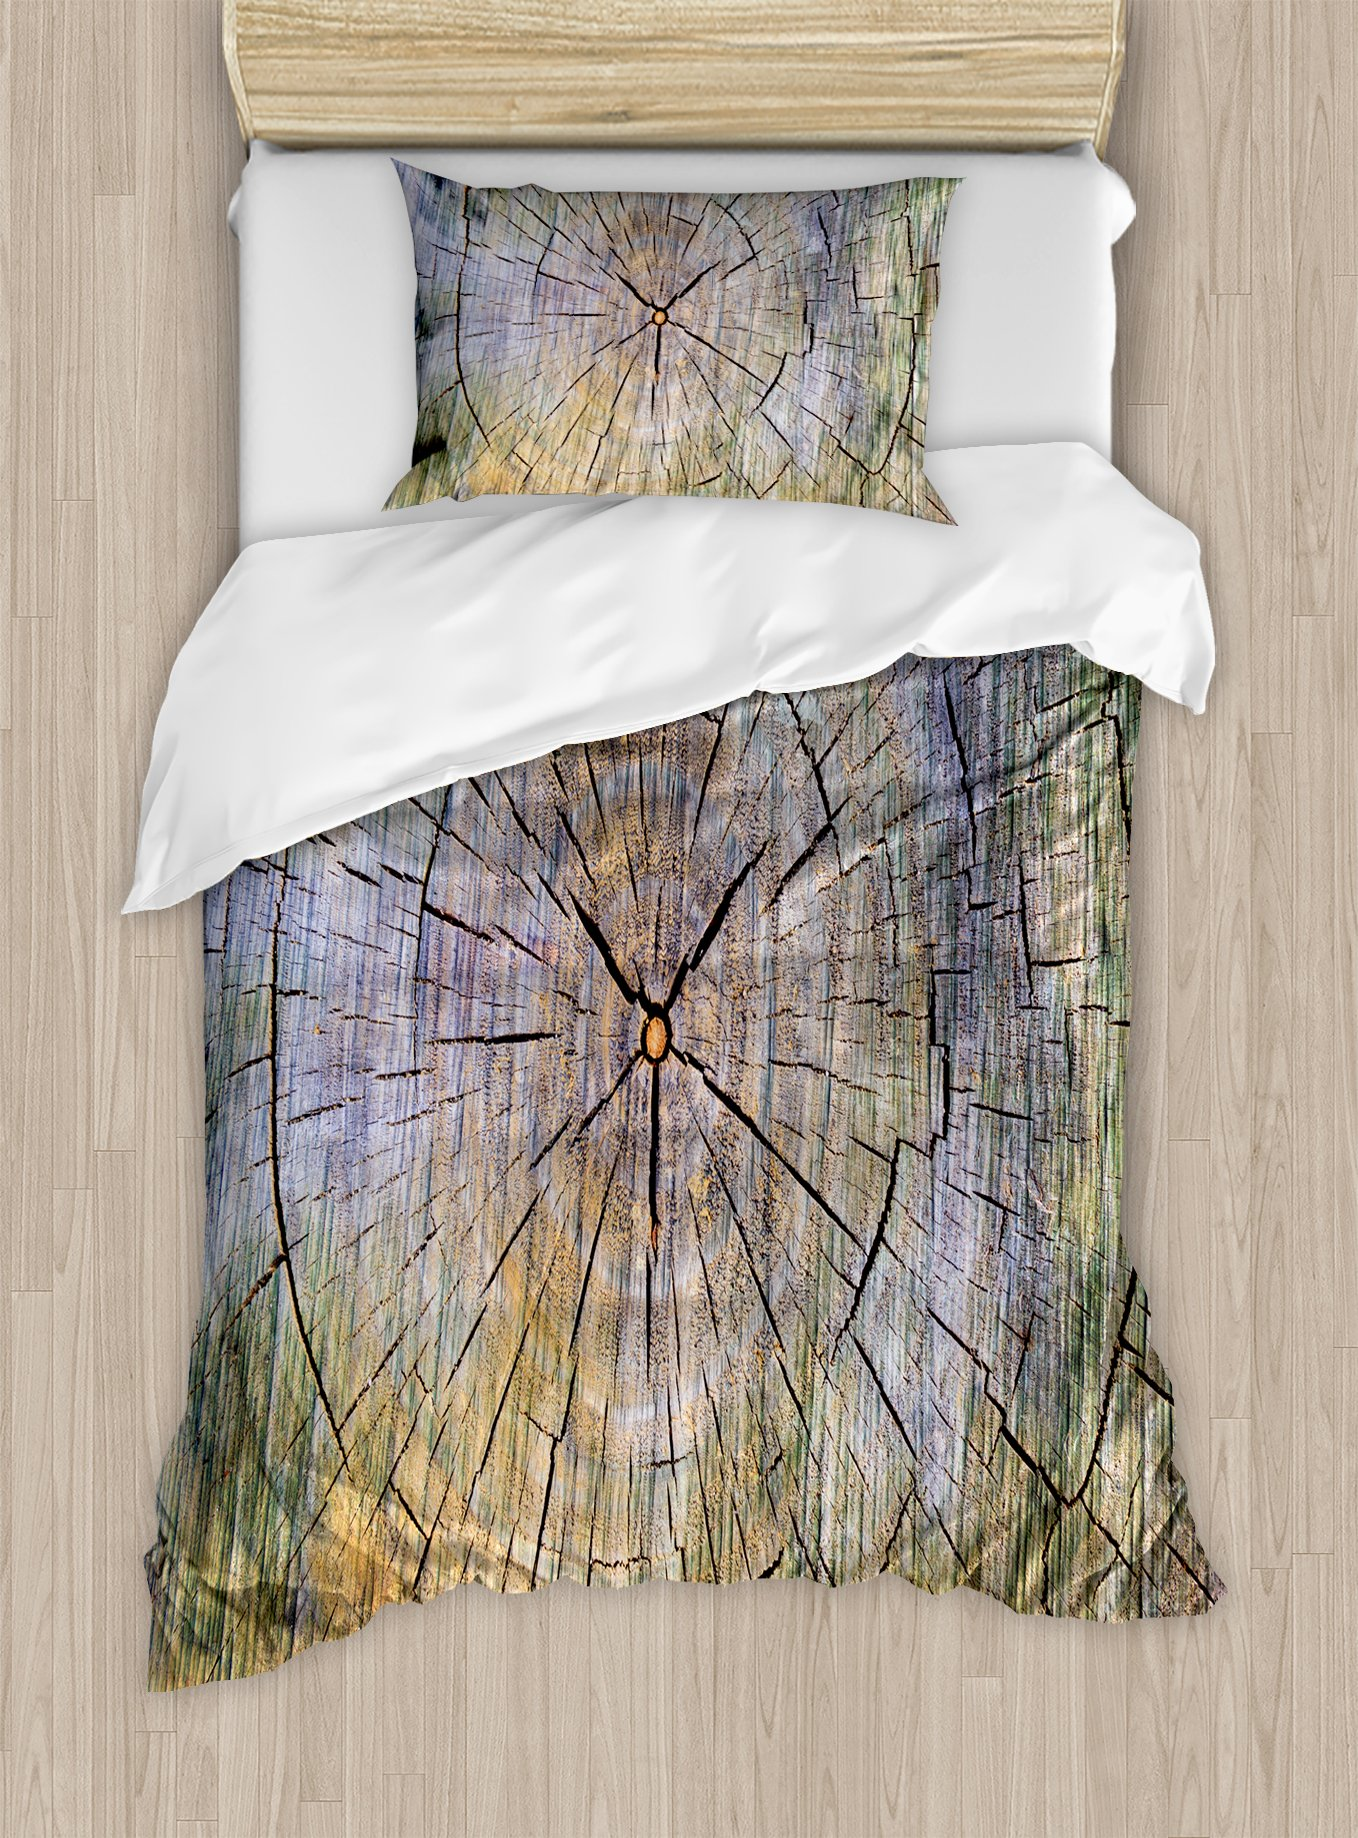 Ambesonne Rustic Duvet Cover Set Twin Size, Annual Rings of Wood Growth Aging Theme Dirty Inner Tree Body Branch Whorls Width Design, Decorative 2 Piece Bedding Set with 1 Pillow Sham, Brown by Ambesonne (Image #1)